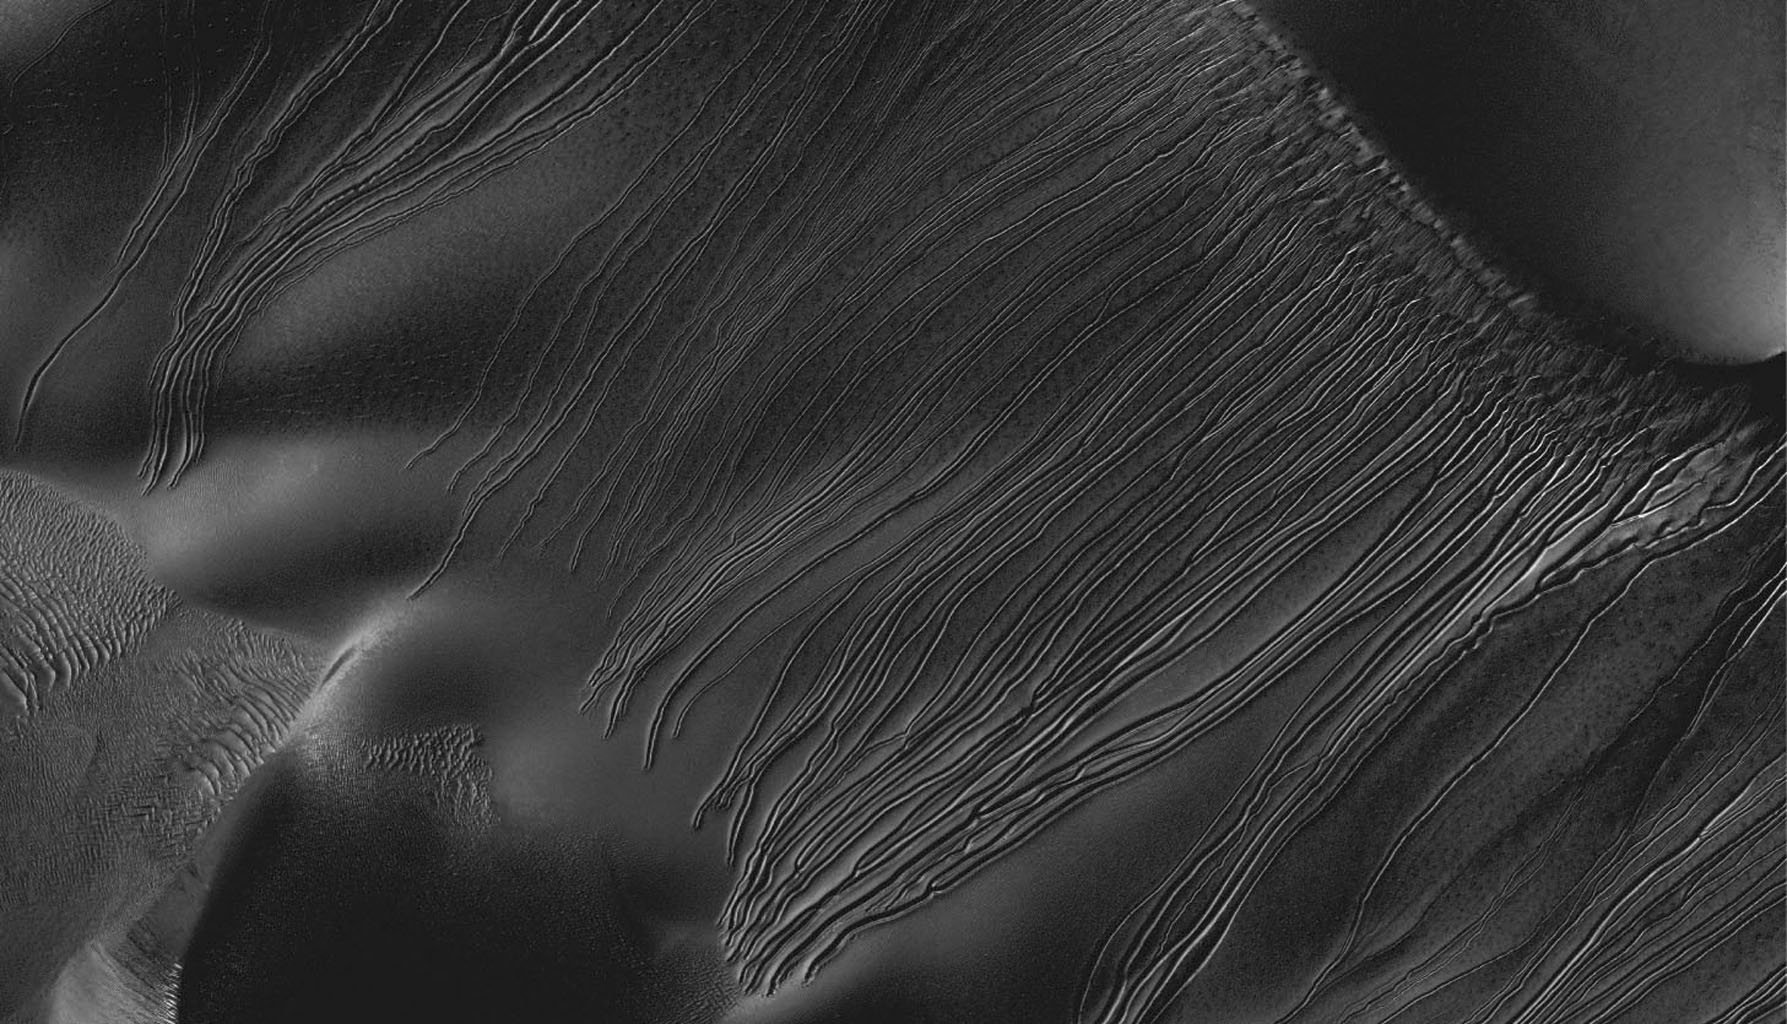 Several types of downhill flow features have been observed on Mars. Shown here is an example of a type called 'linear gullies' as seen by NASA's Mars Reconnaissance Orbiter.